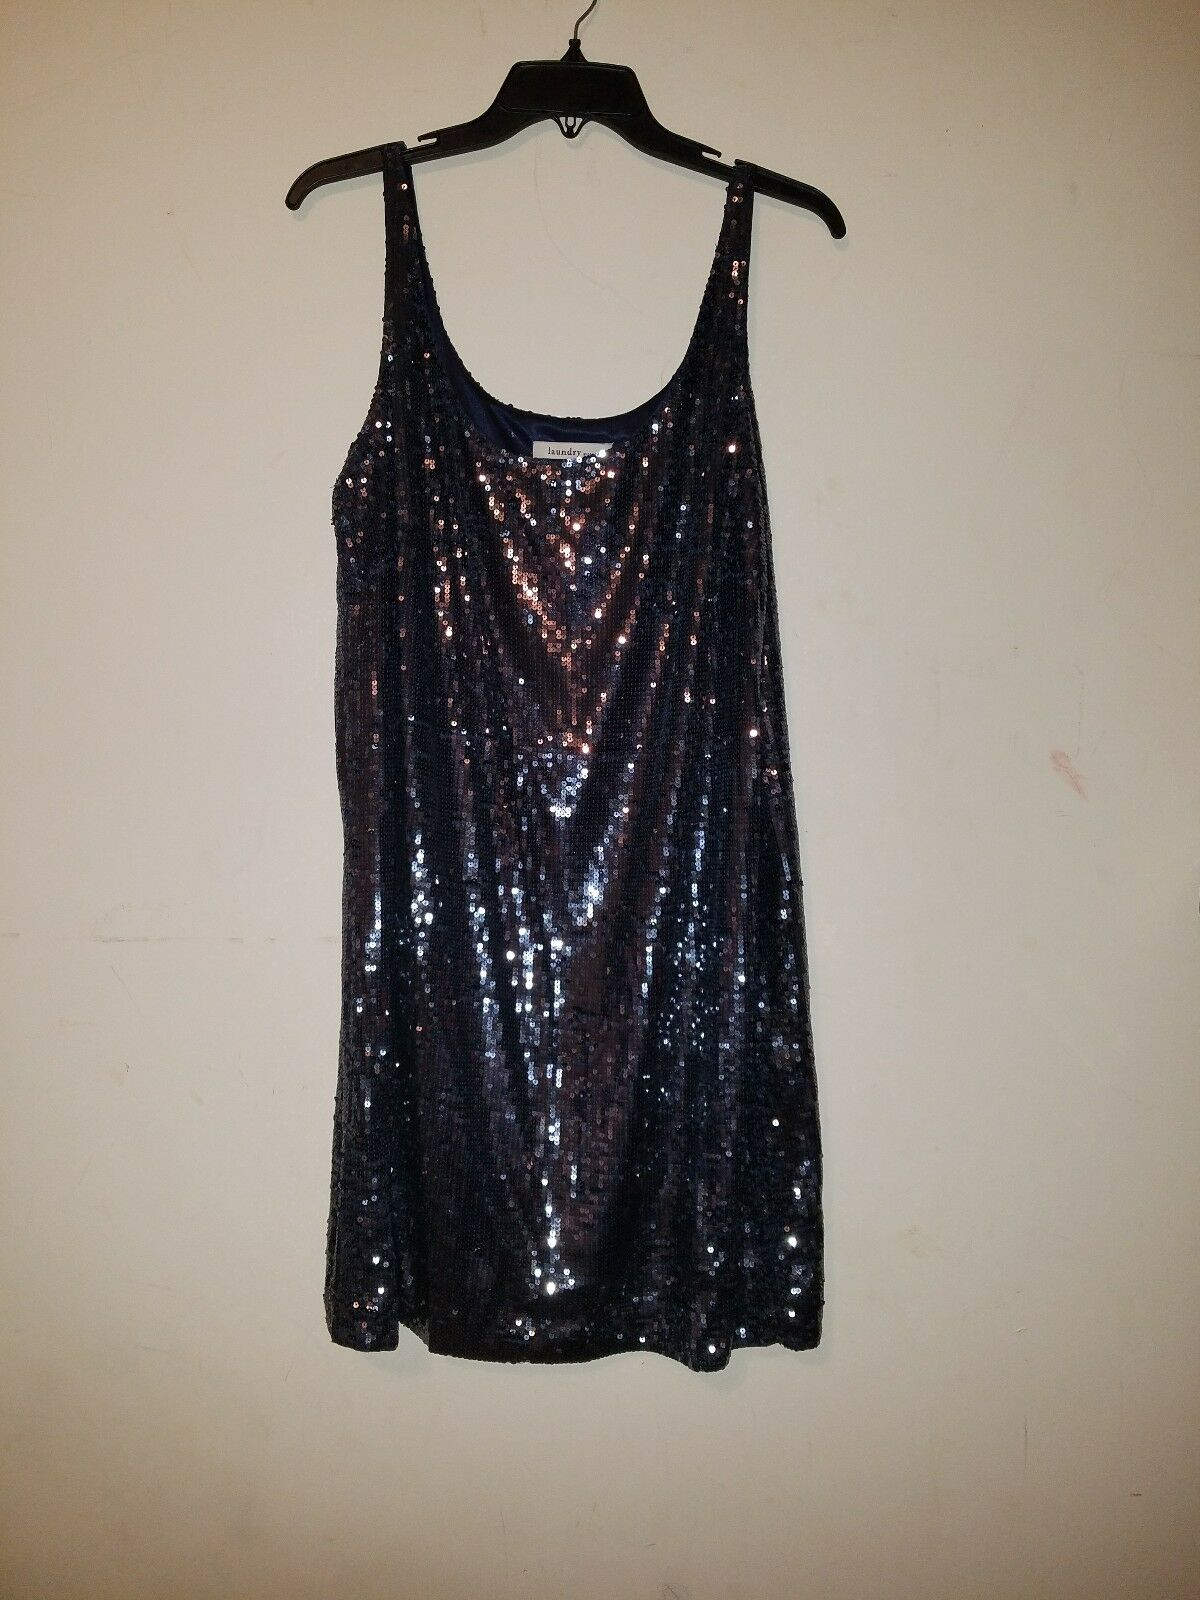 NWT Laundry by Design Sequin slip-on Navy bluee  dress sz 10